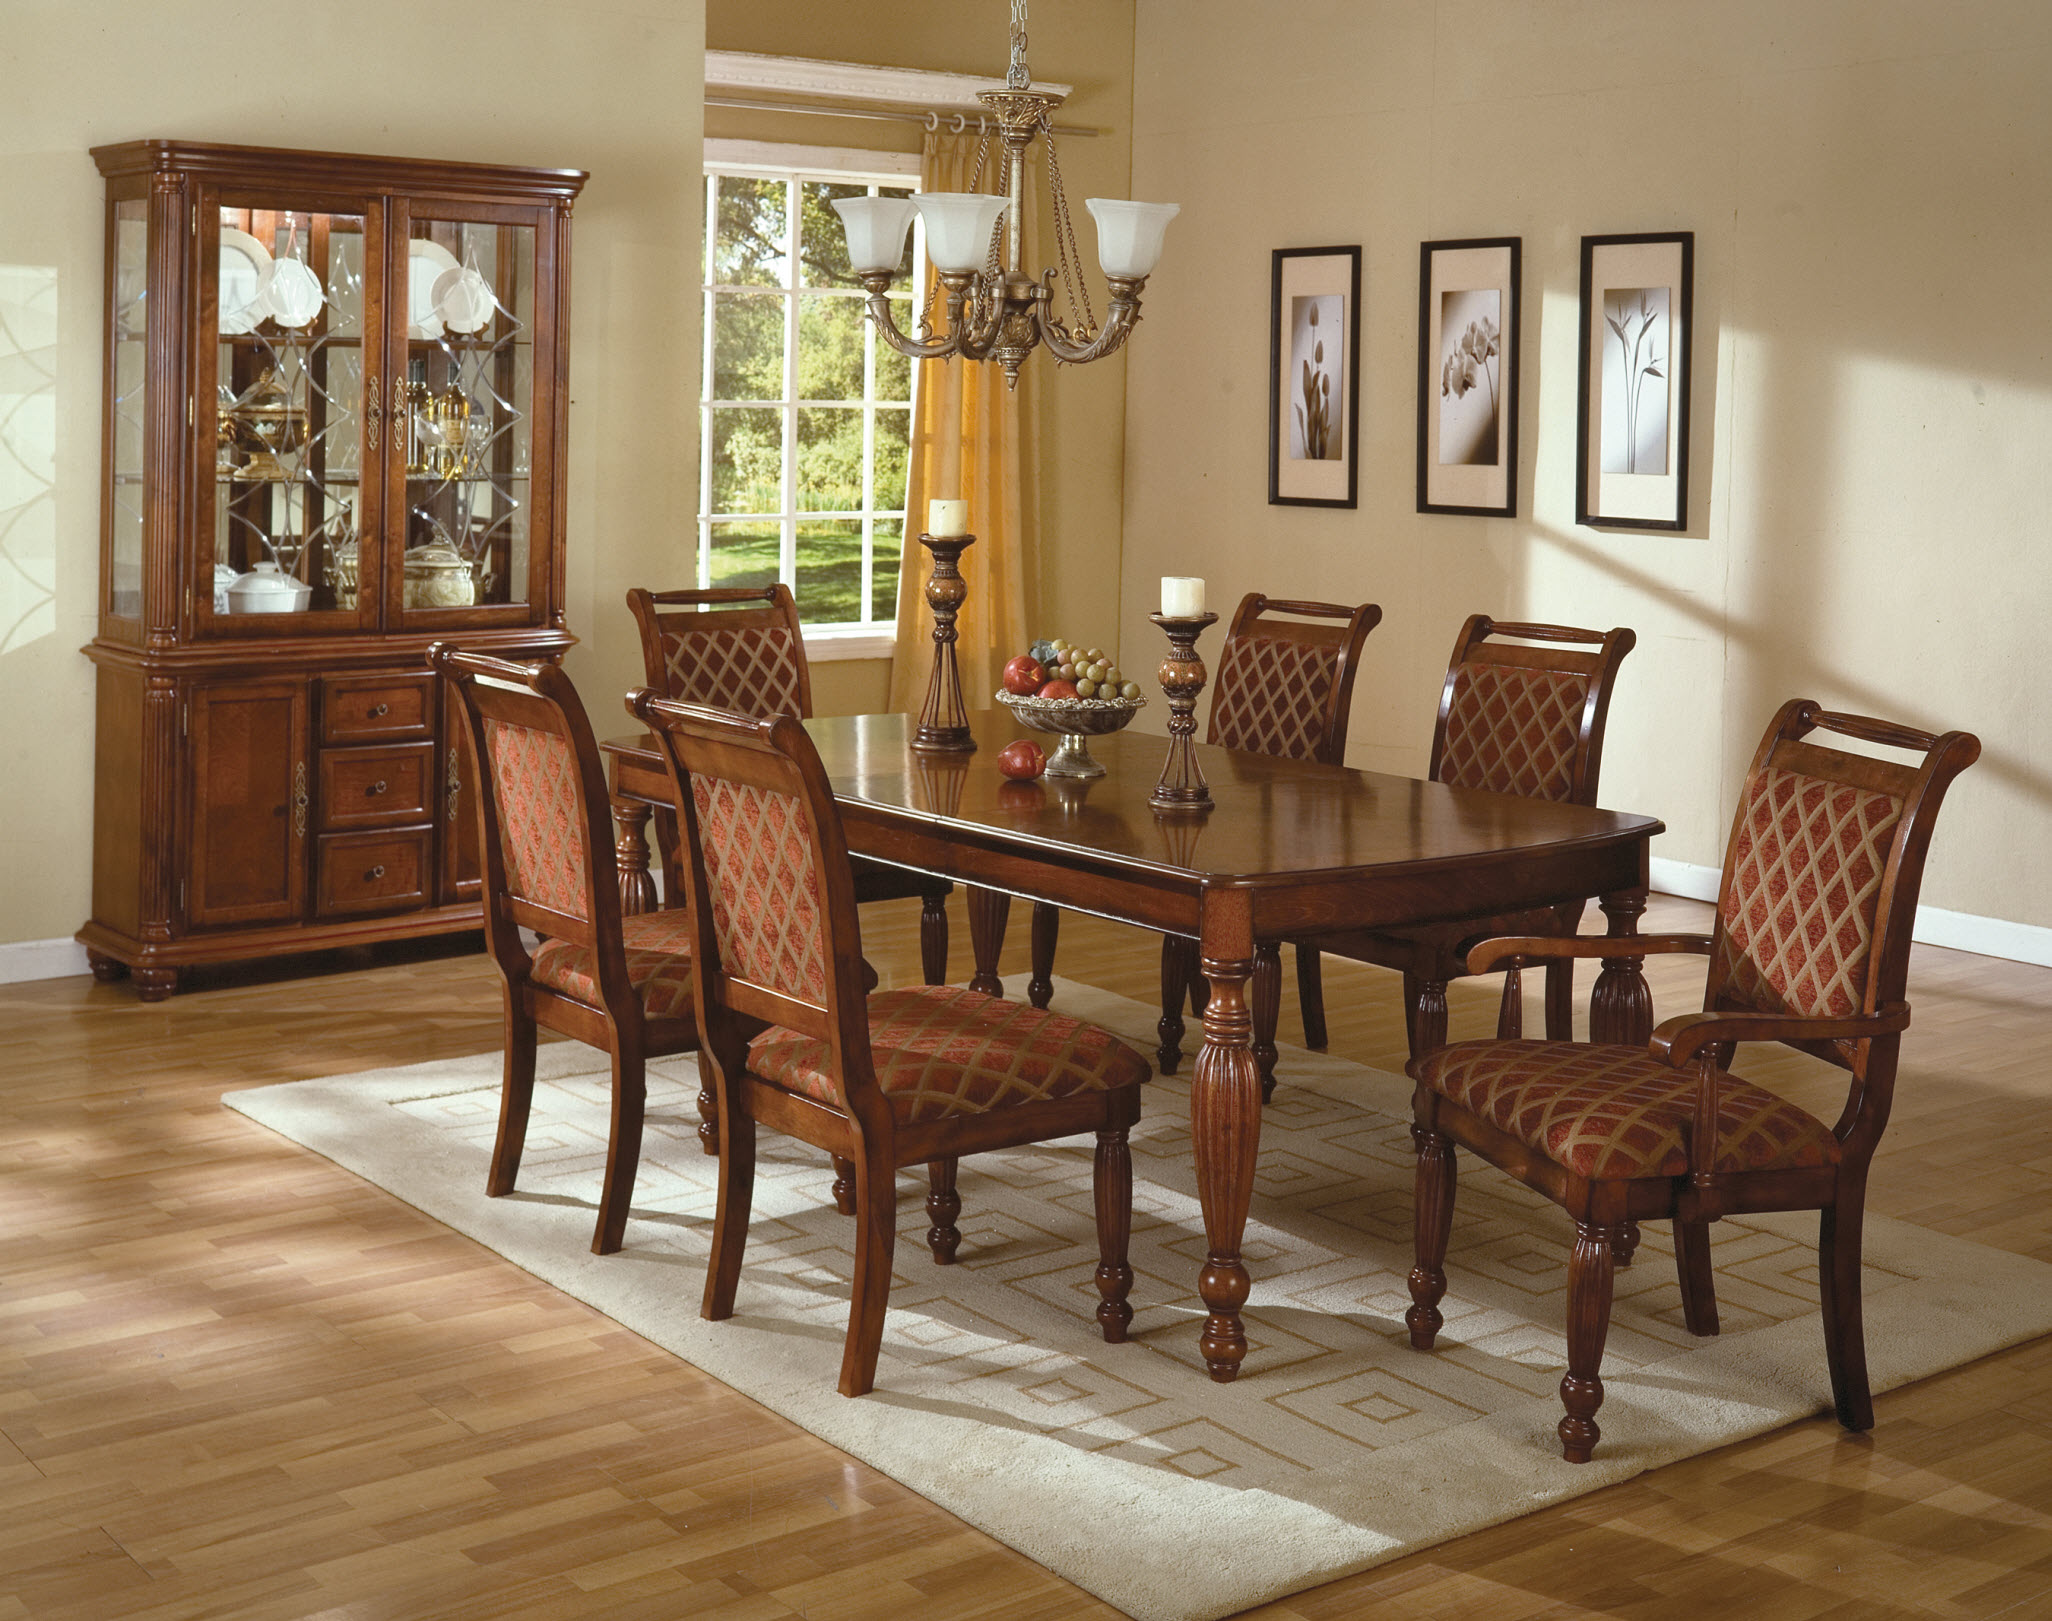 Fascinating Formal Dining Room Sets For 10 Photo Cragfont Buy.